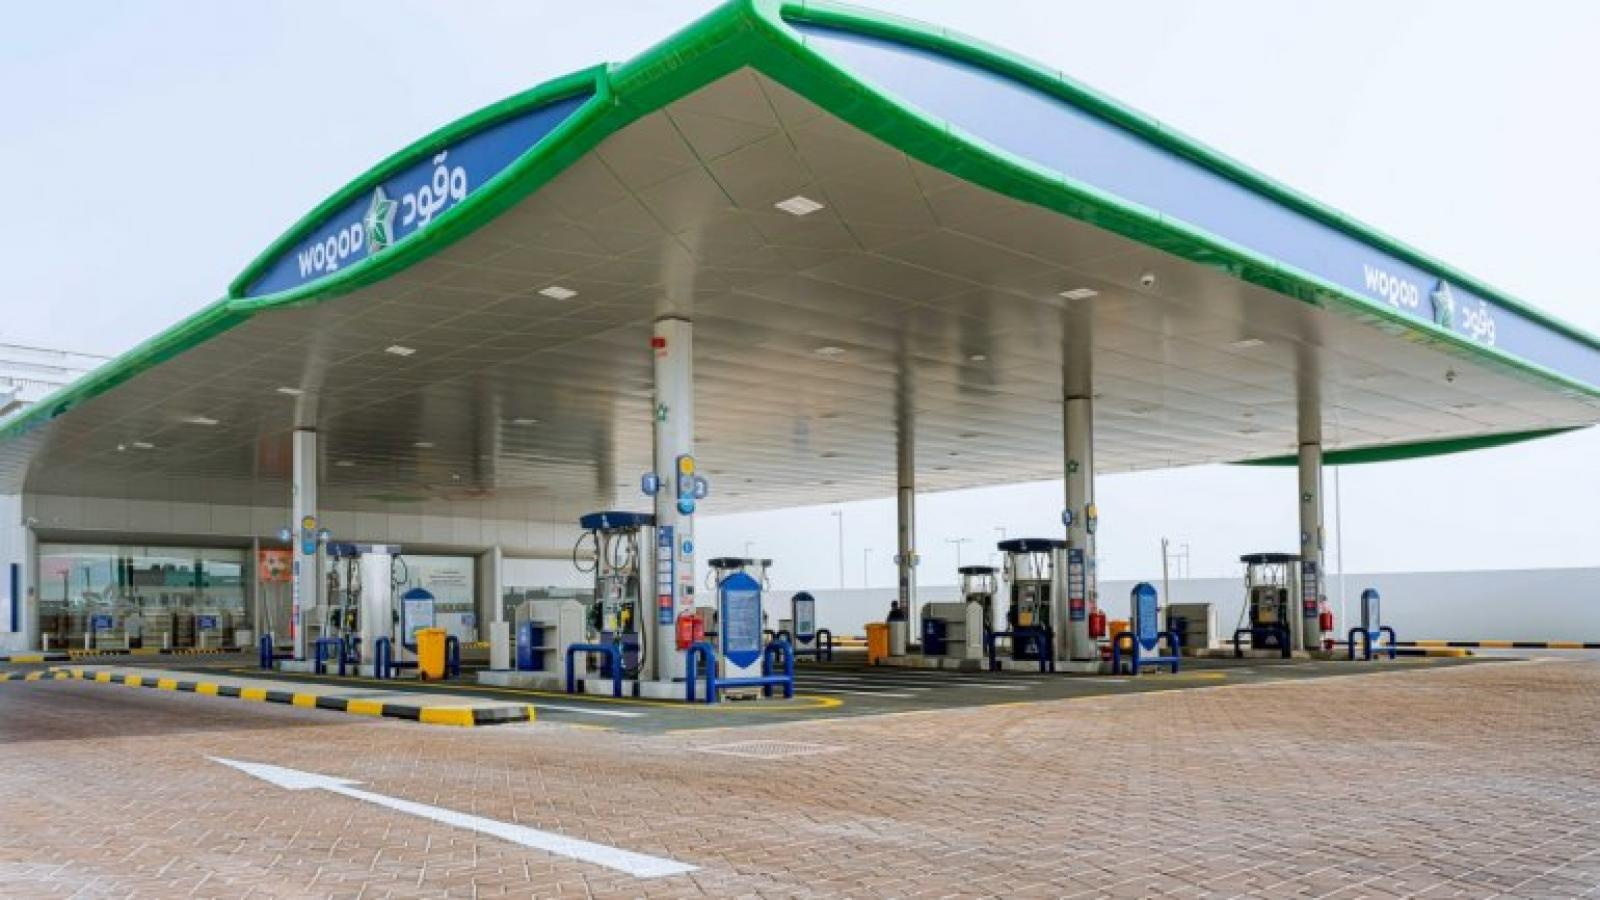 Woqod announces opening of Waterfront New petrol station at Lusail City